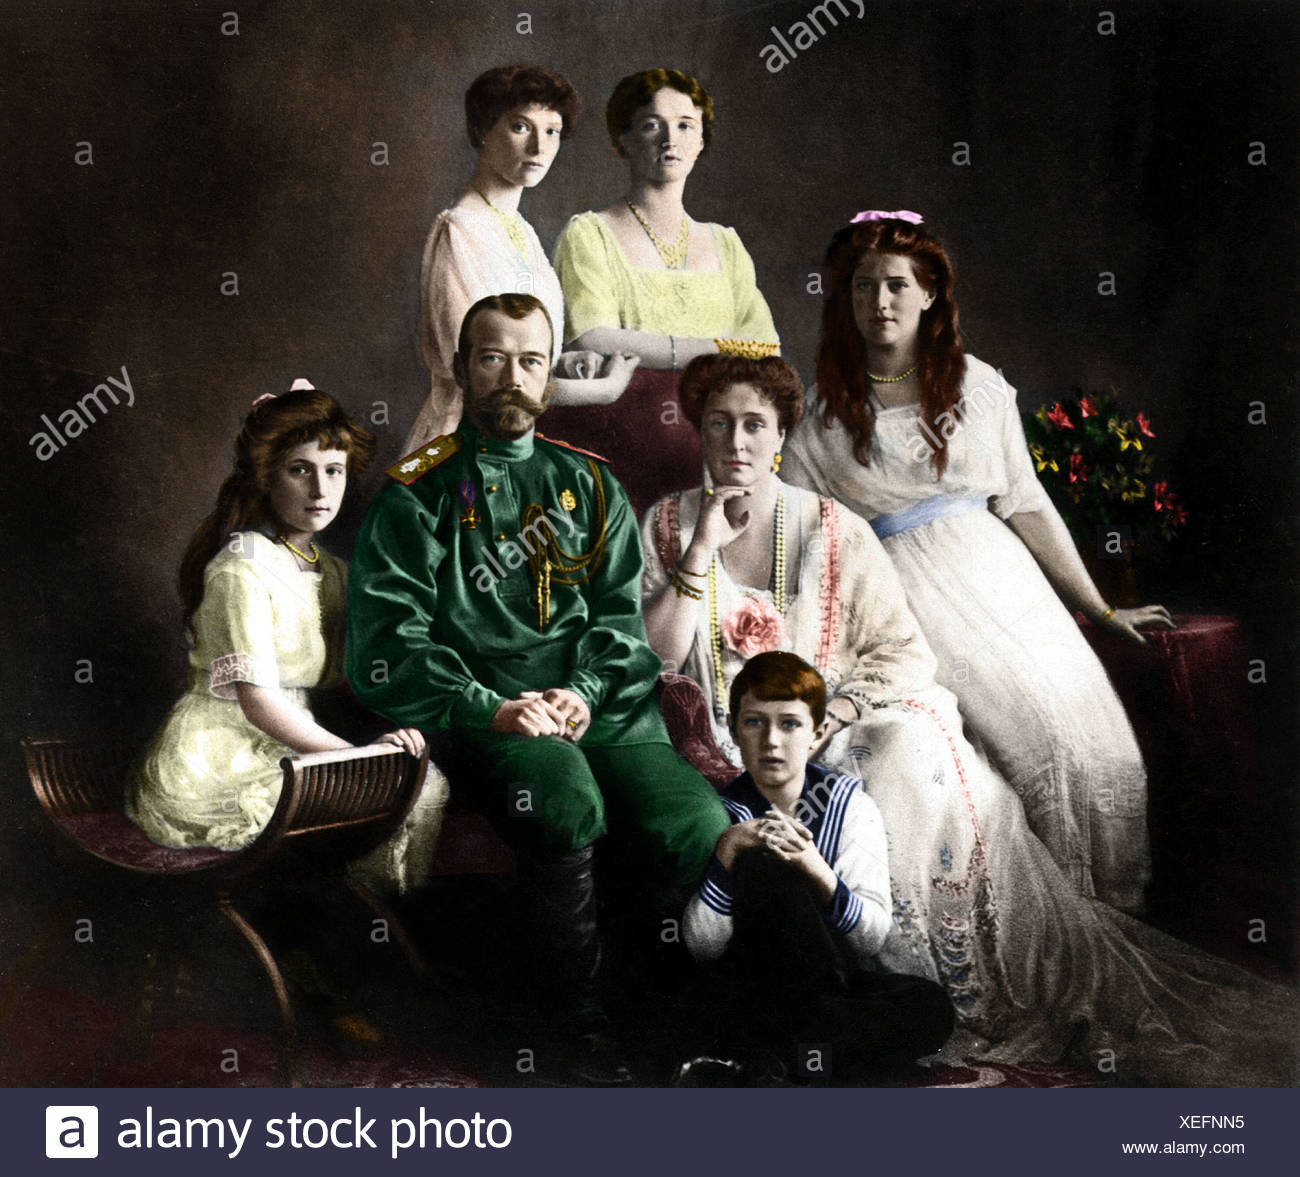 Nicholas Ii His Family Stock Photos and Images